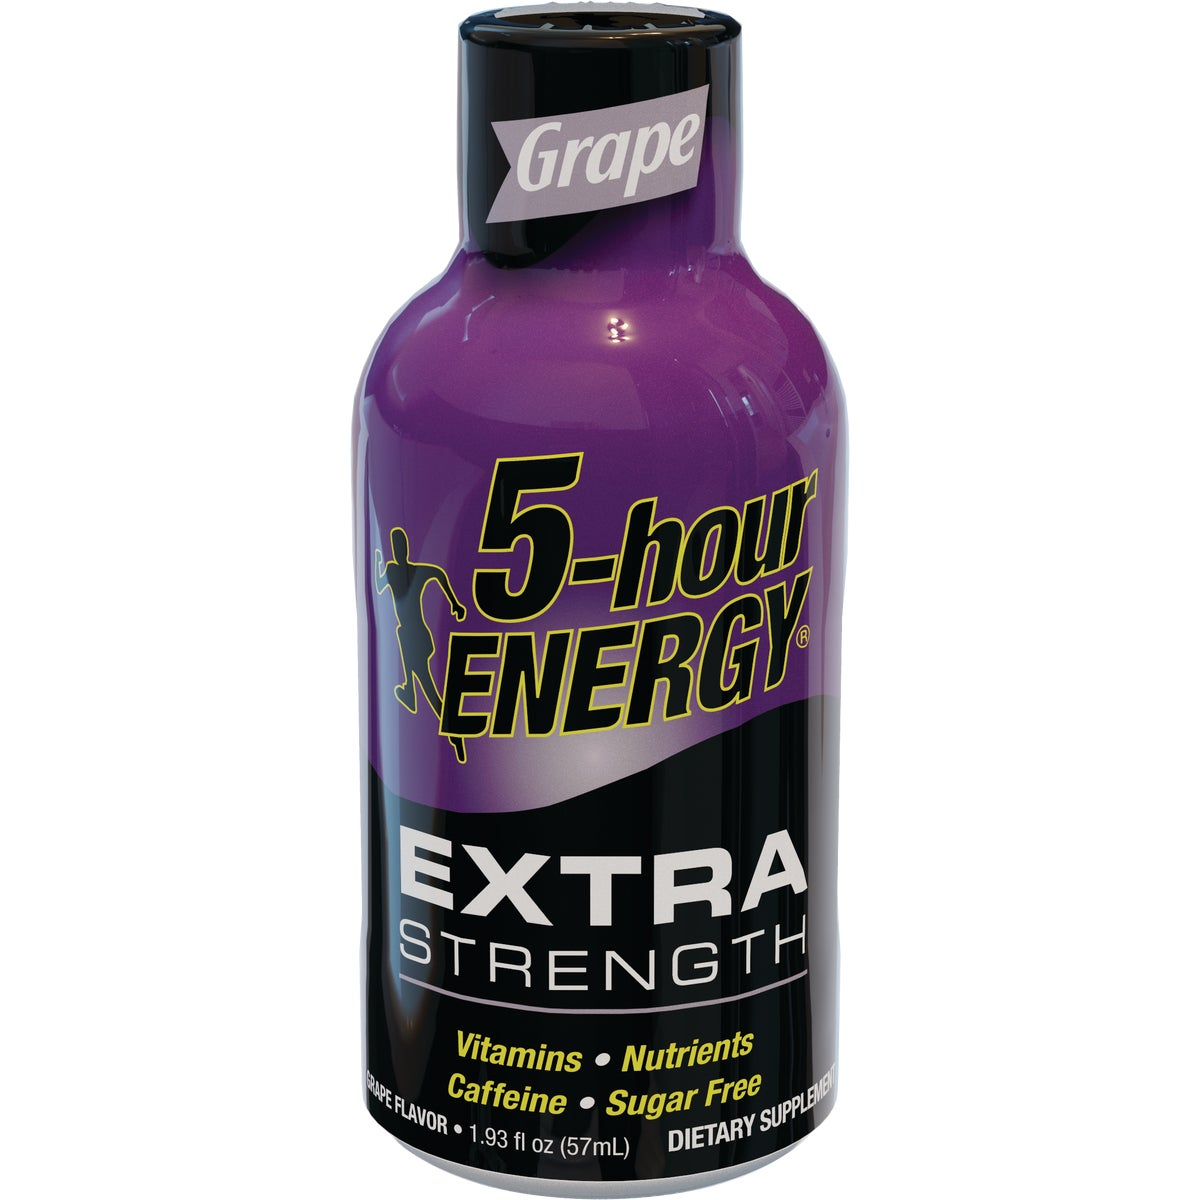 2OZ GRAPE XTRAST ENERGY - 728127 by 5 Hour Energy